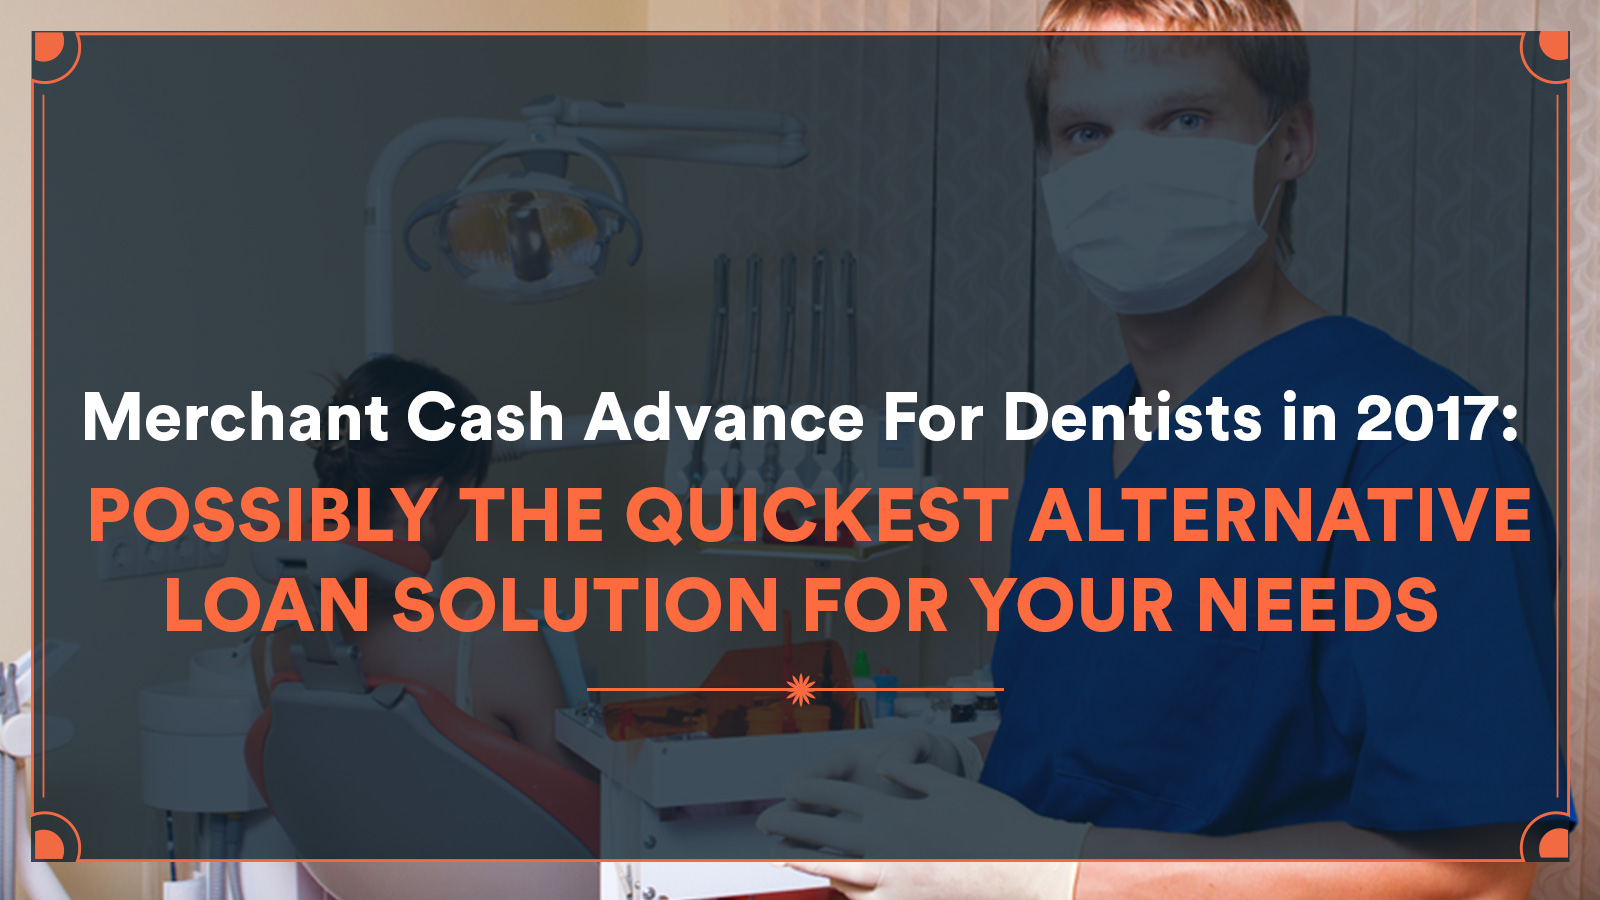 Merchant cash advane for dentist